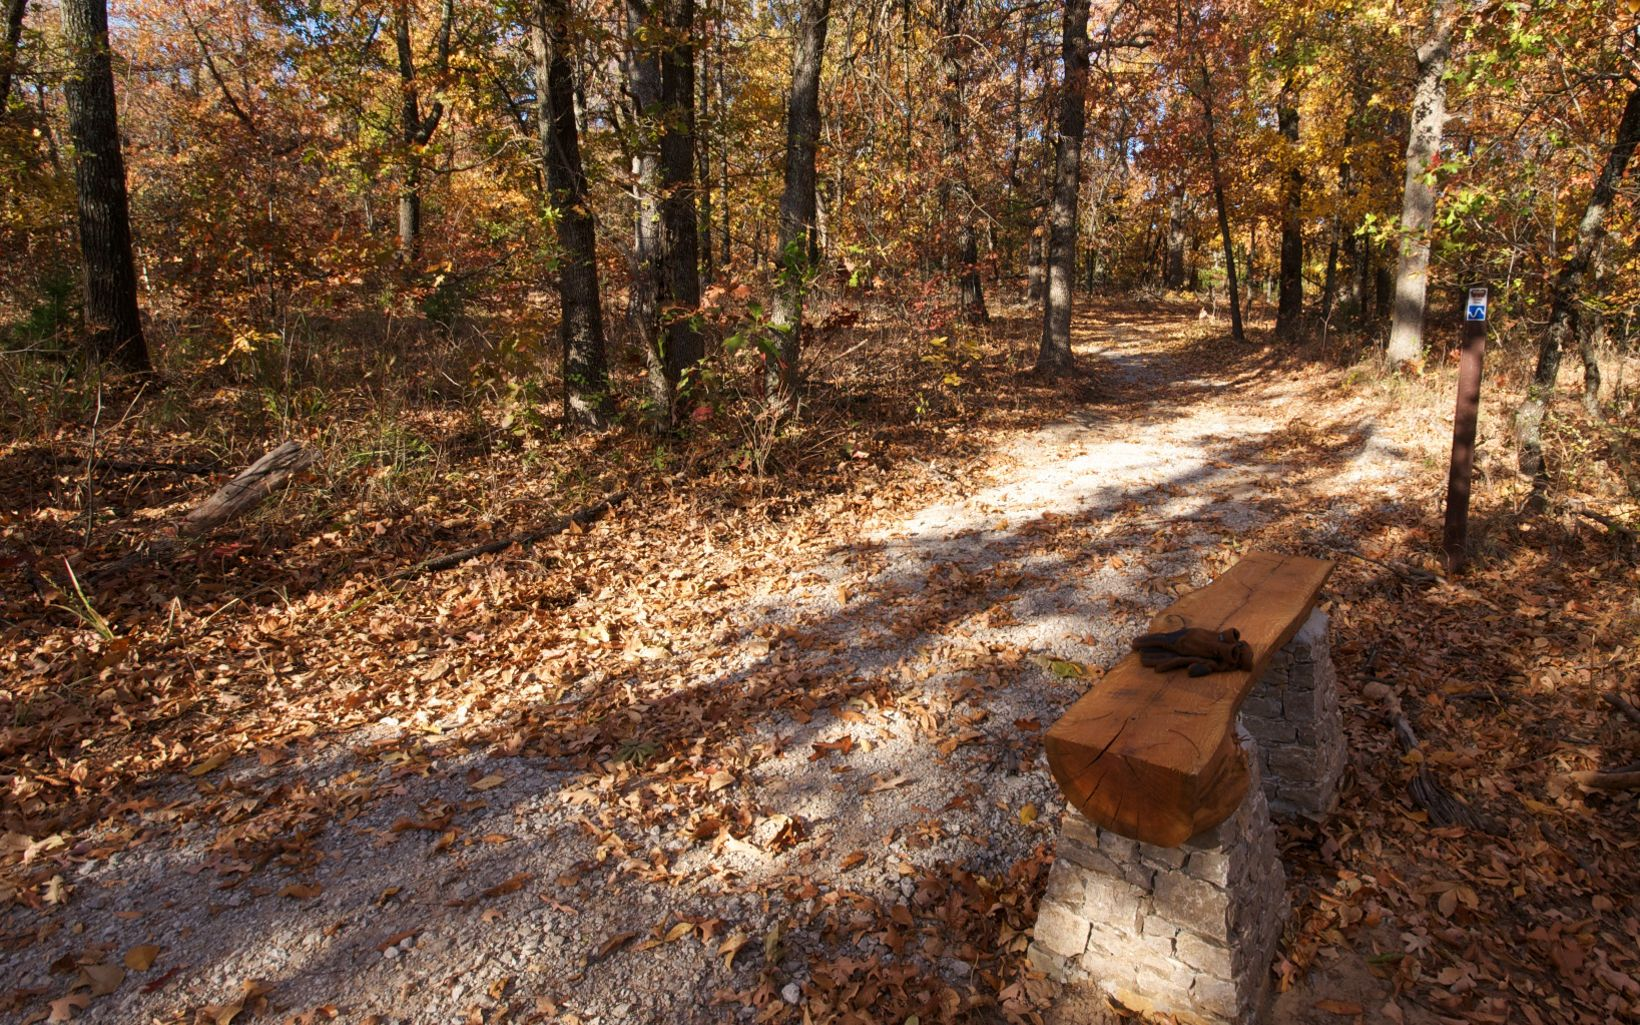 Hiking trails and hand-made benches at Keystone Ancient Forest in Sandsprings, OK.